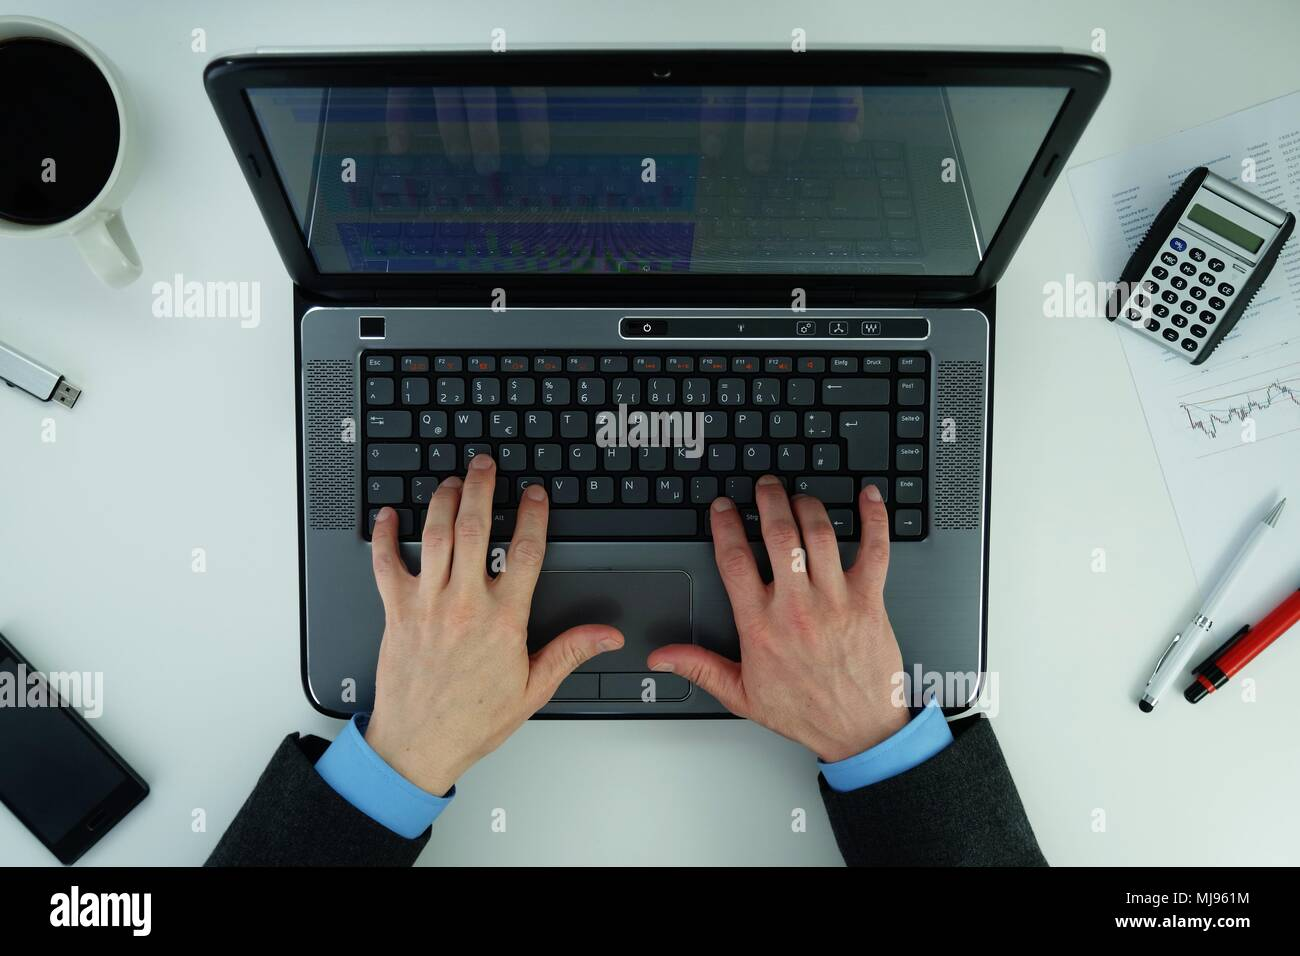 Working on a laptop - Stock Image